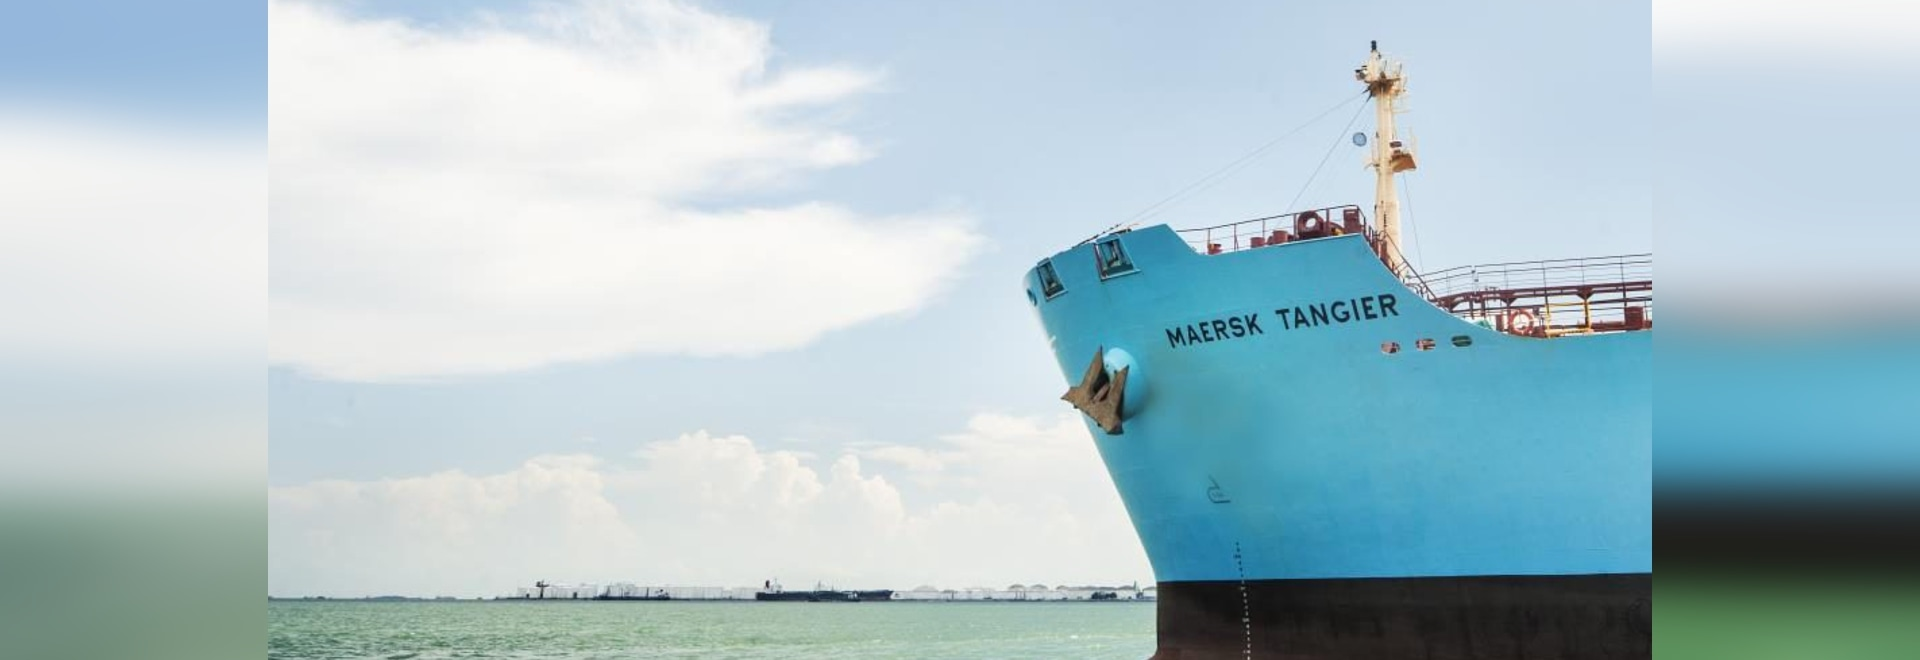 Image Courtesy: Maersk Tankers. Image for illustrative purposes.